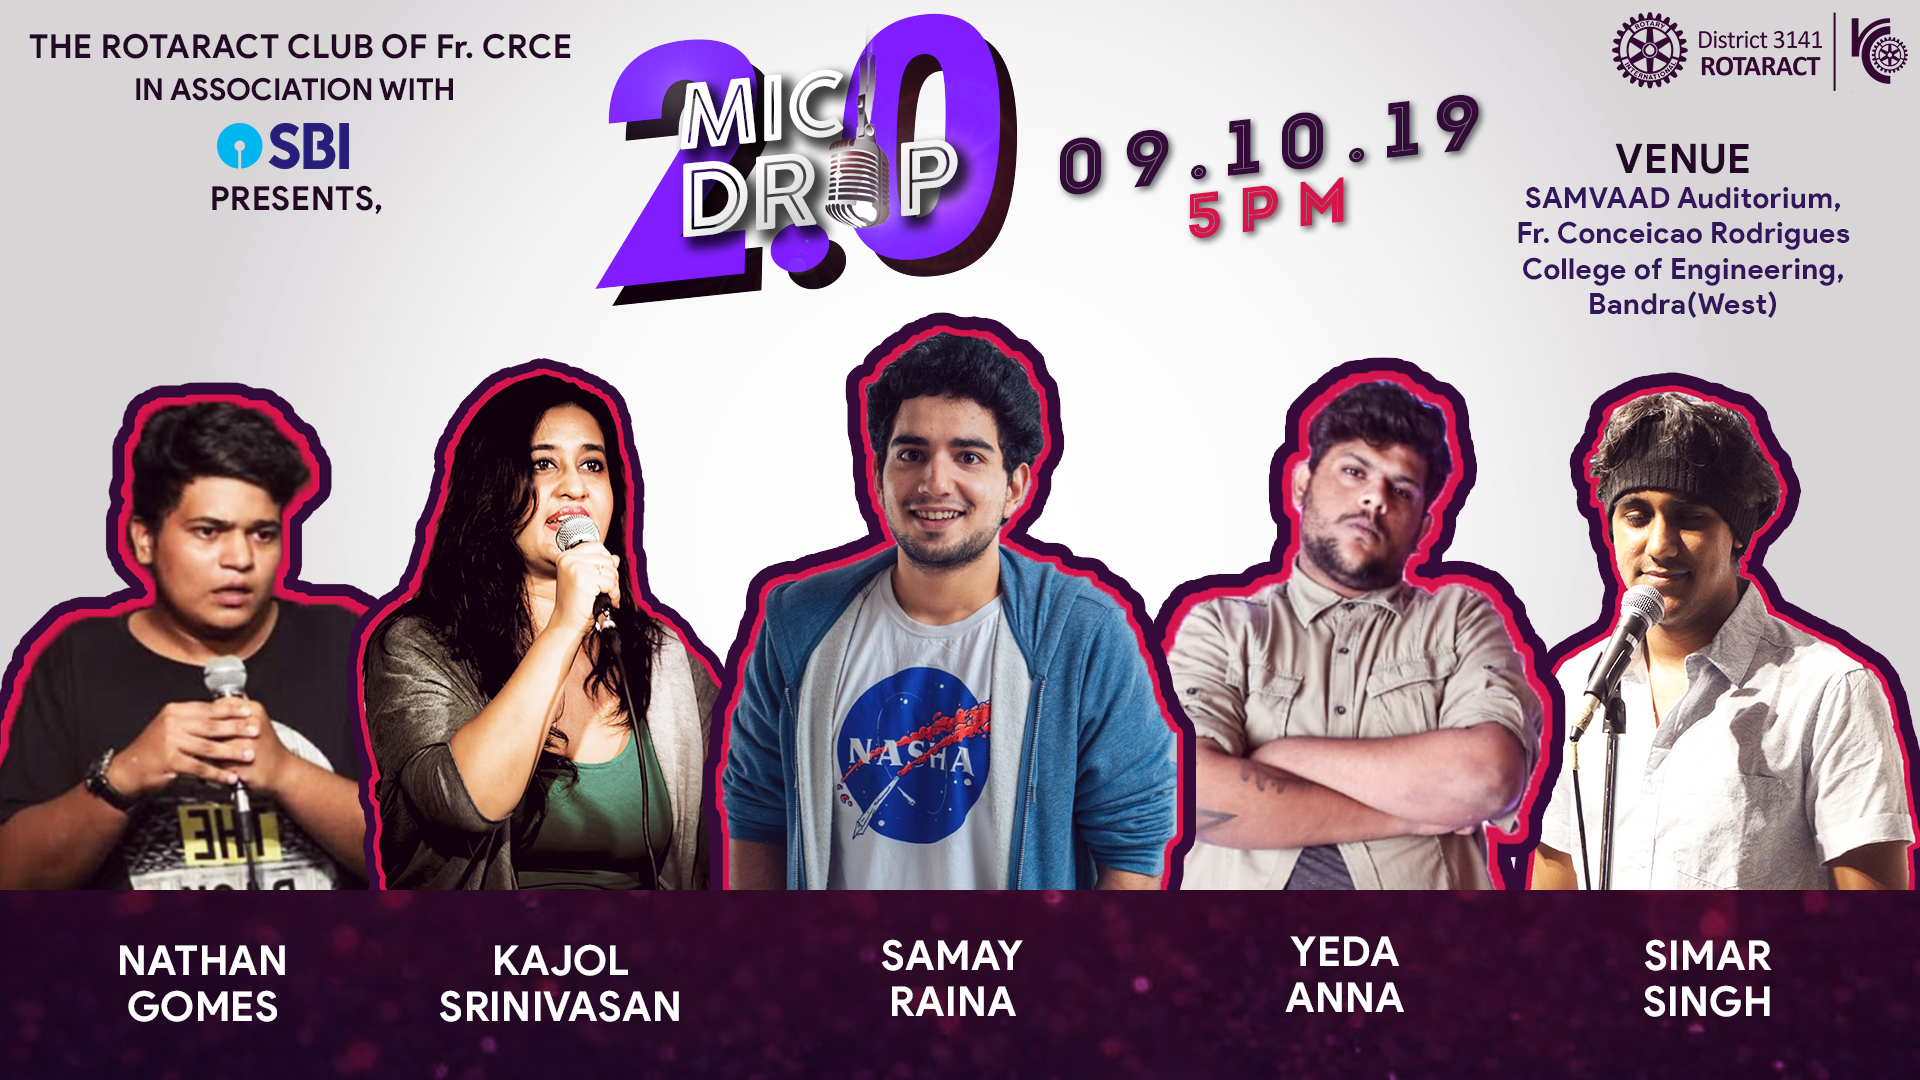 Fr. CRCE,Bandra MIC Drop 2.0,  9 Sept, 2019 @ 5 PM